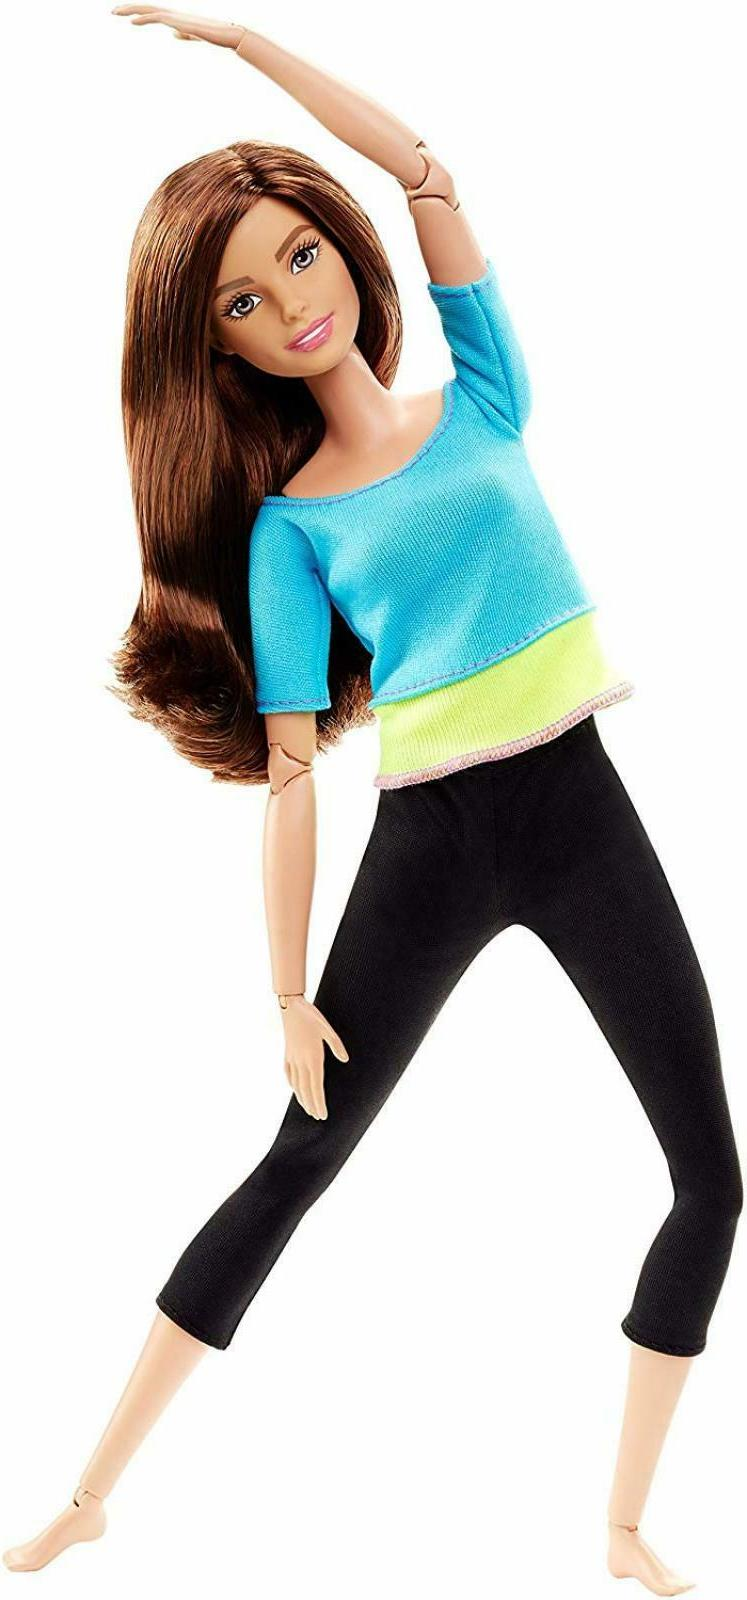 Barbie Made to Move Barbie Doll Blue Top Amazon Exclusive Gi